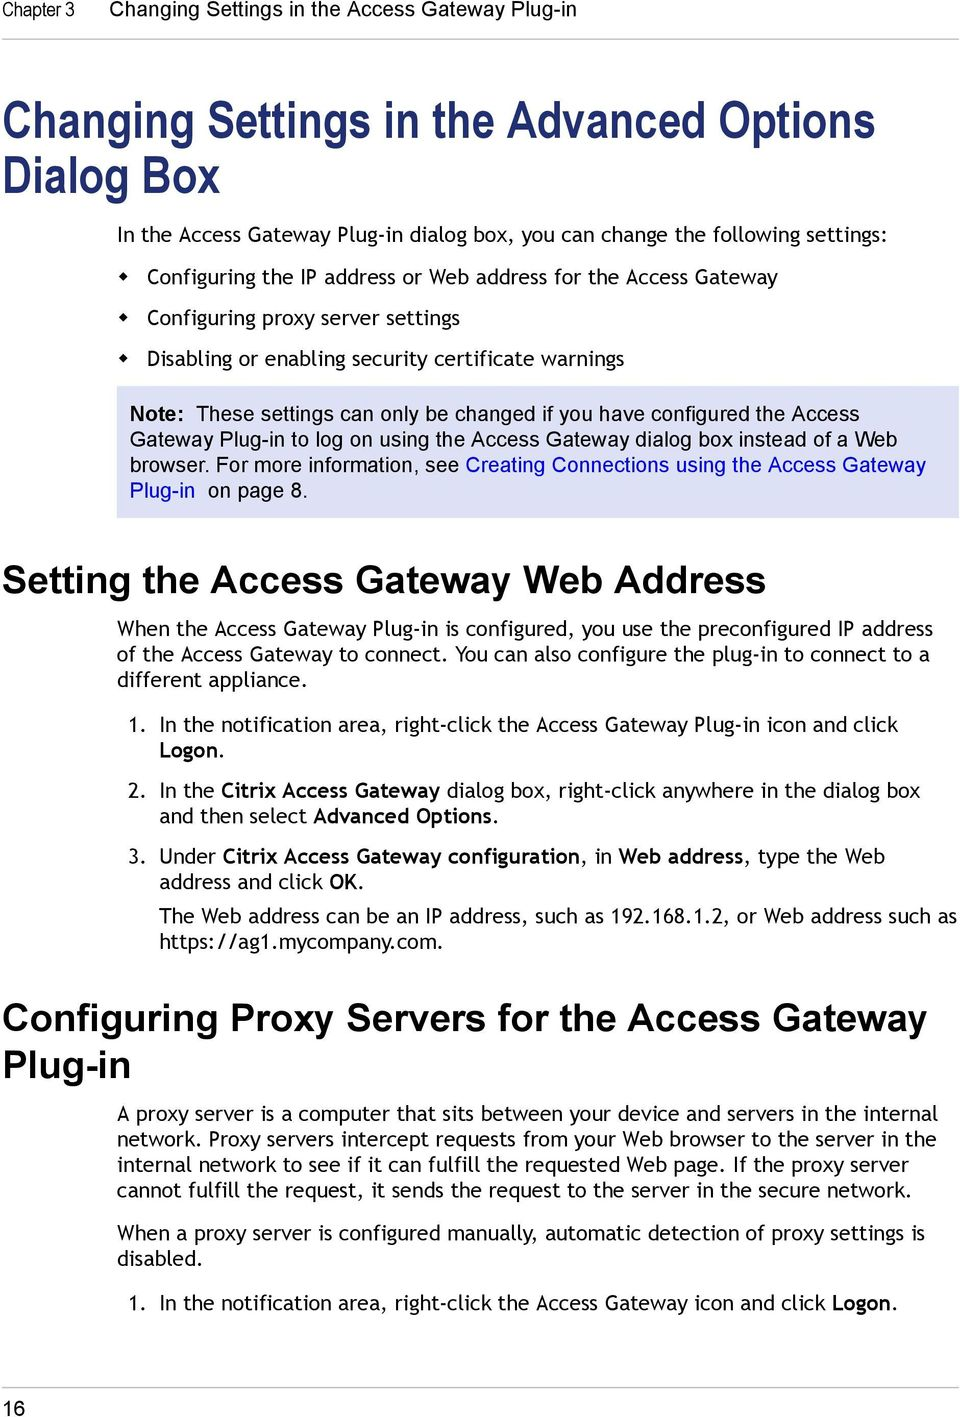 have configured the Access Gateway Plug-in to log on using the Access Gateway dialog box instead of a Web browser.